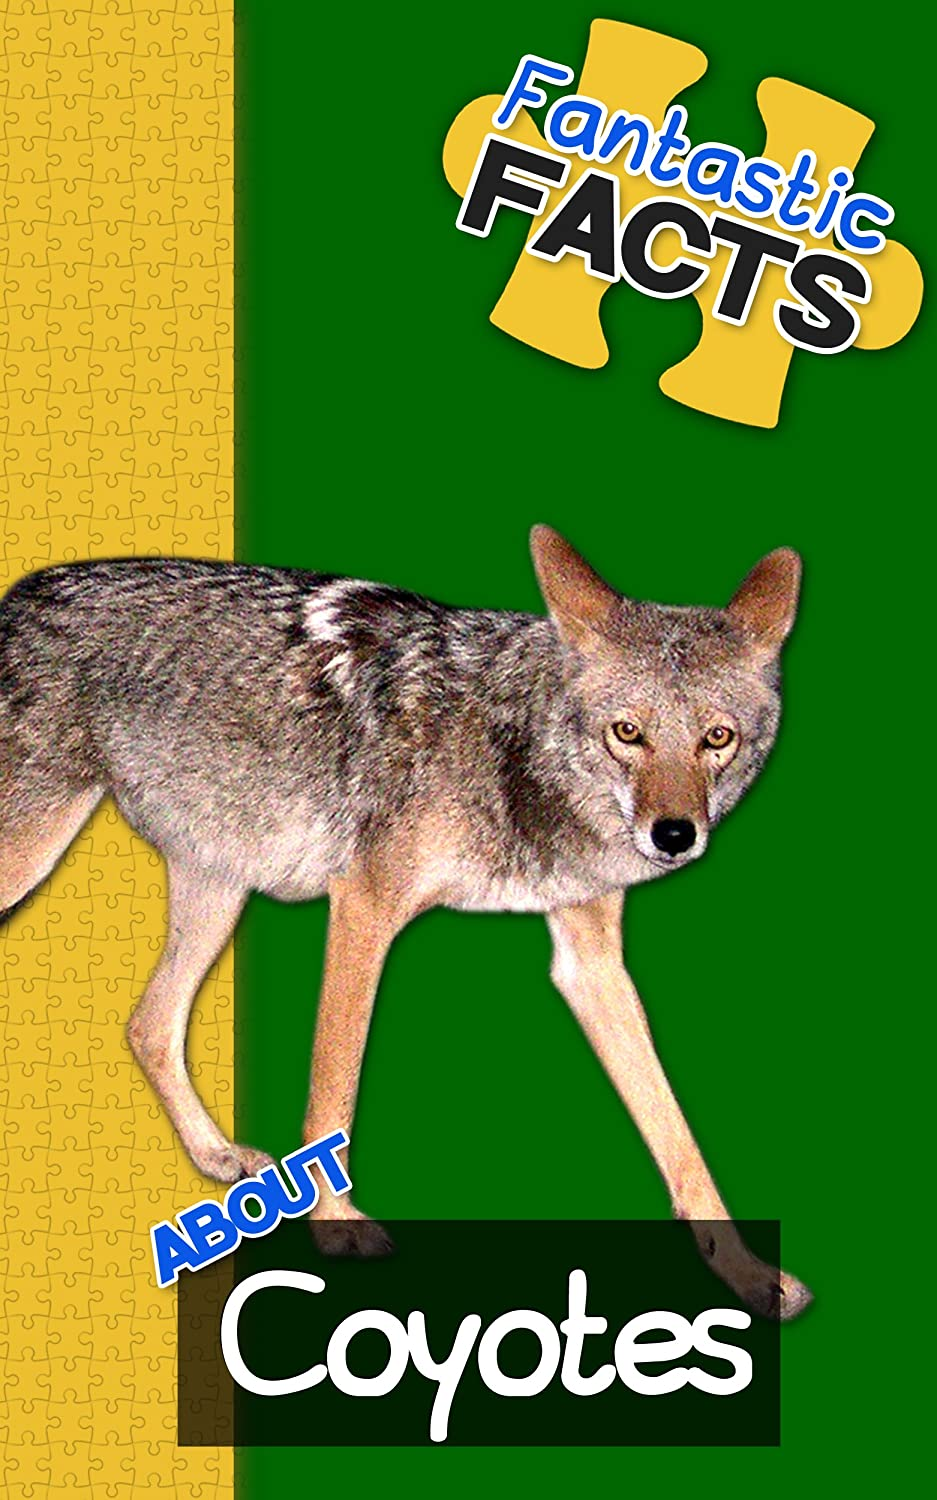 Coyotes-cover-1